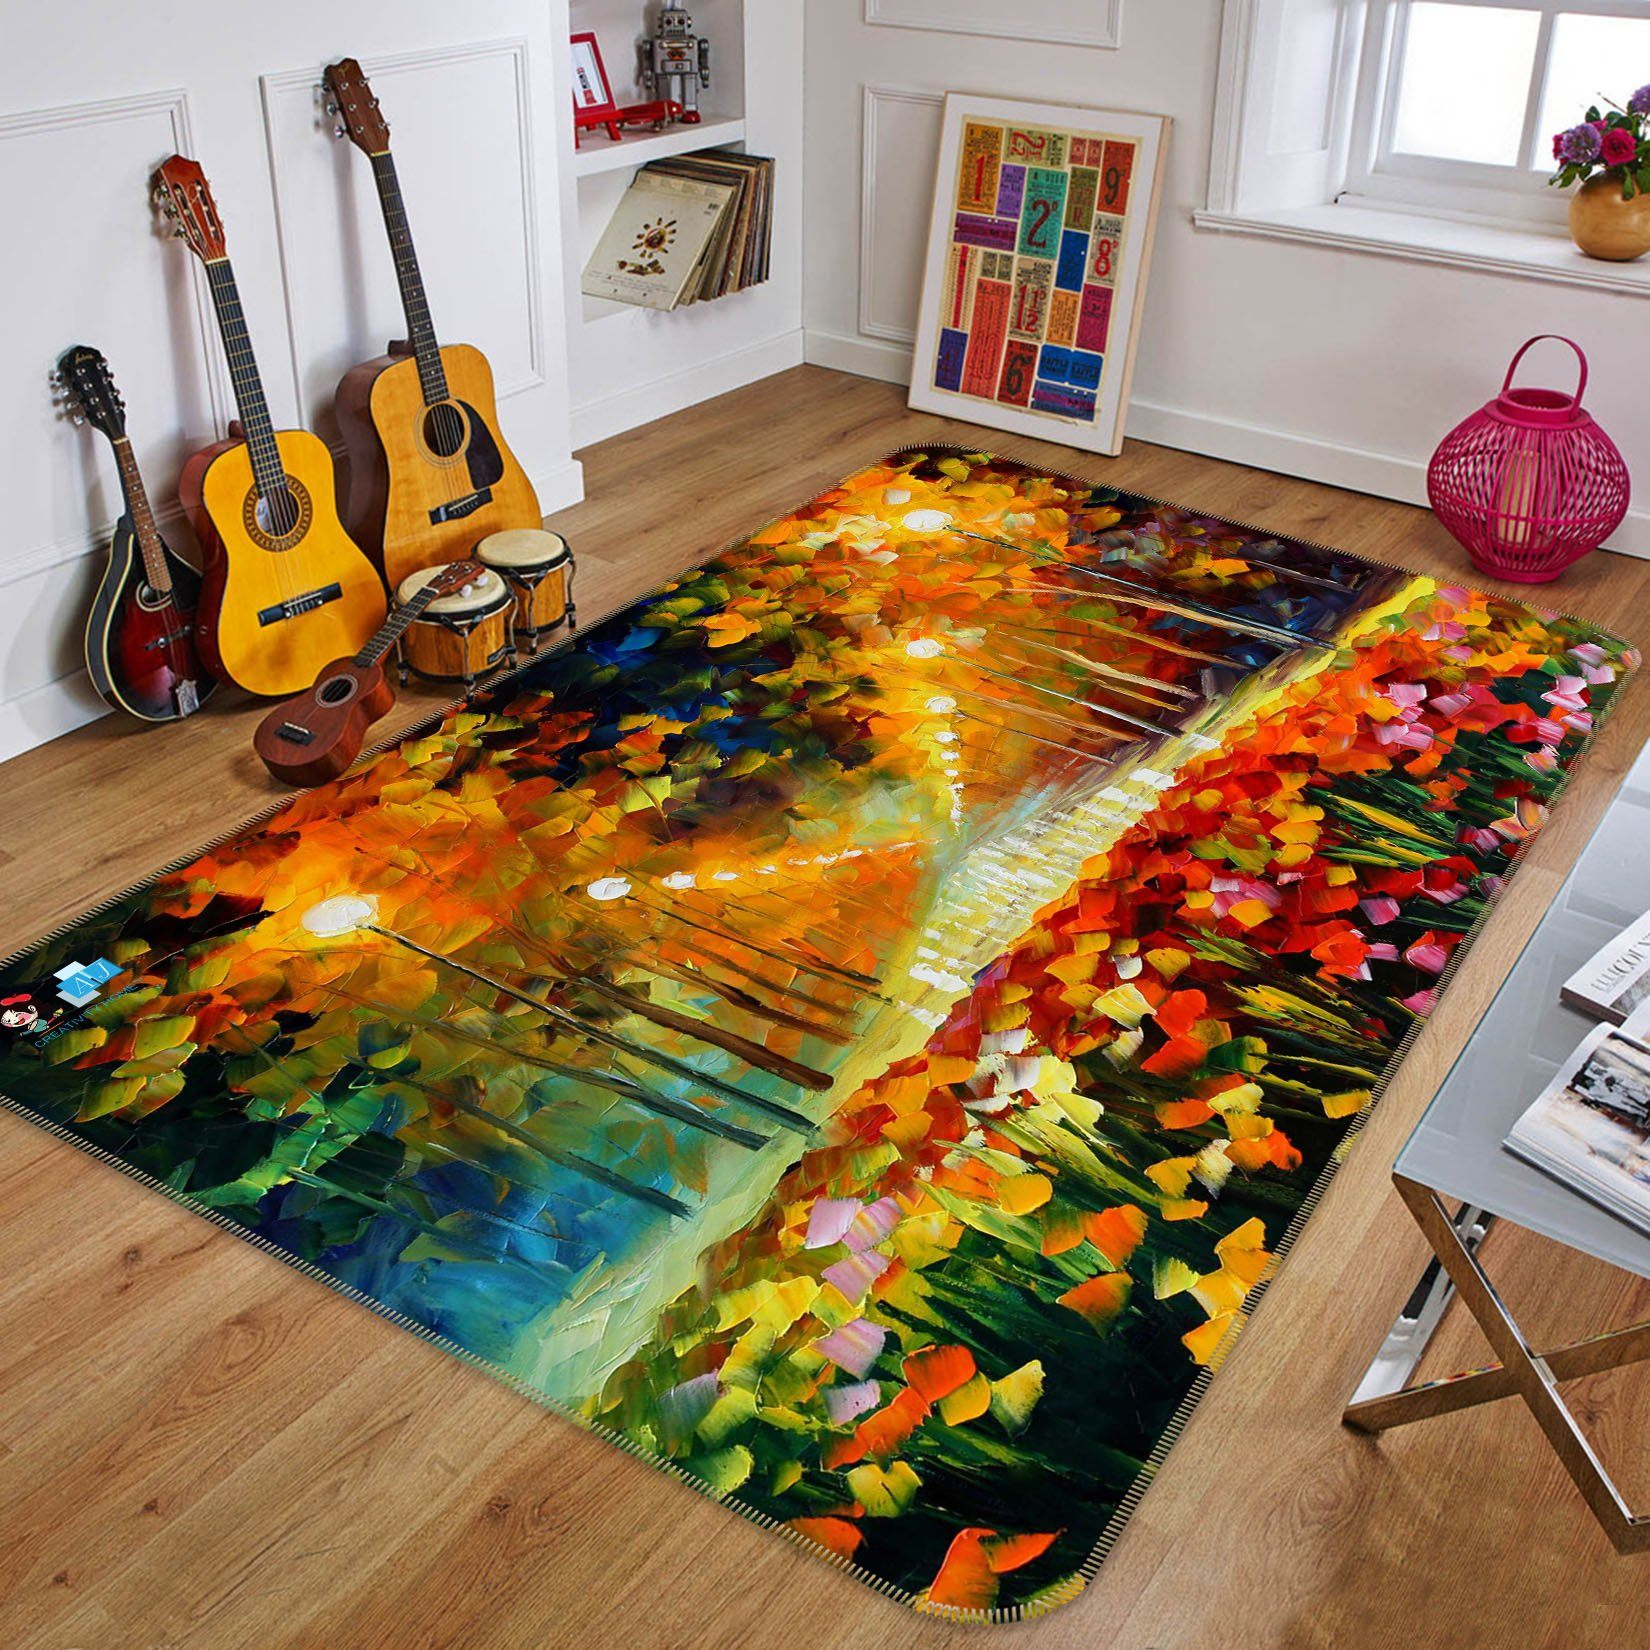 3D Oil Painting Street Light 760 Non Slip Rug Mat Mat AJ Creativity Home